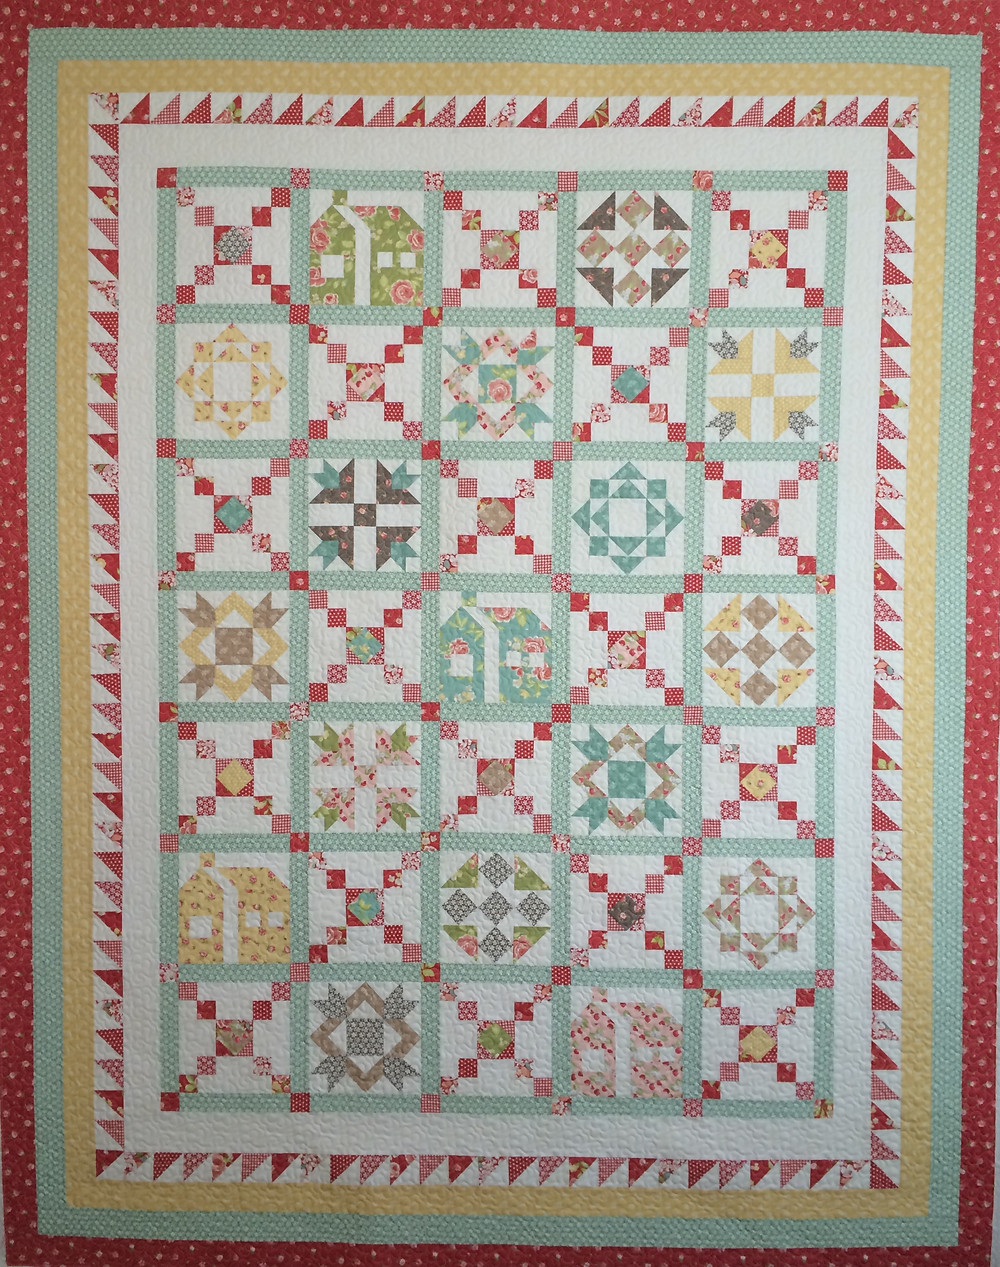 Kimberly Special Charity Benefit Quilt